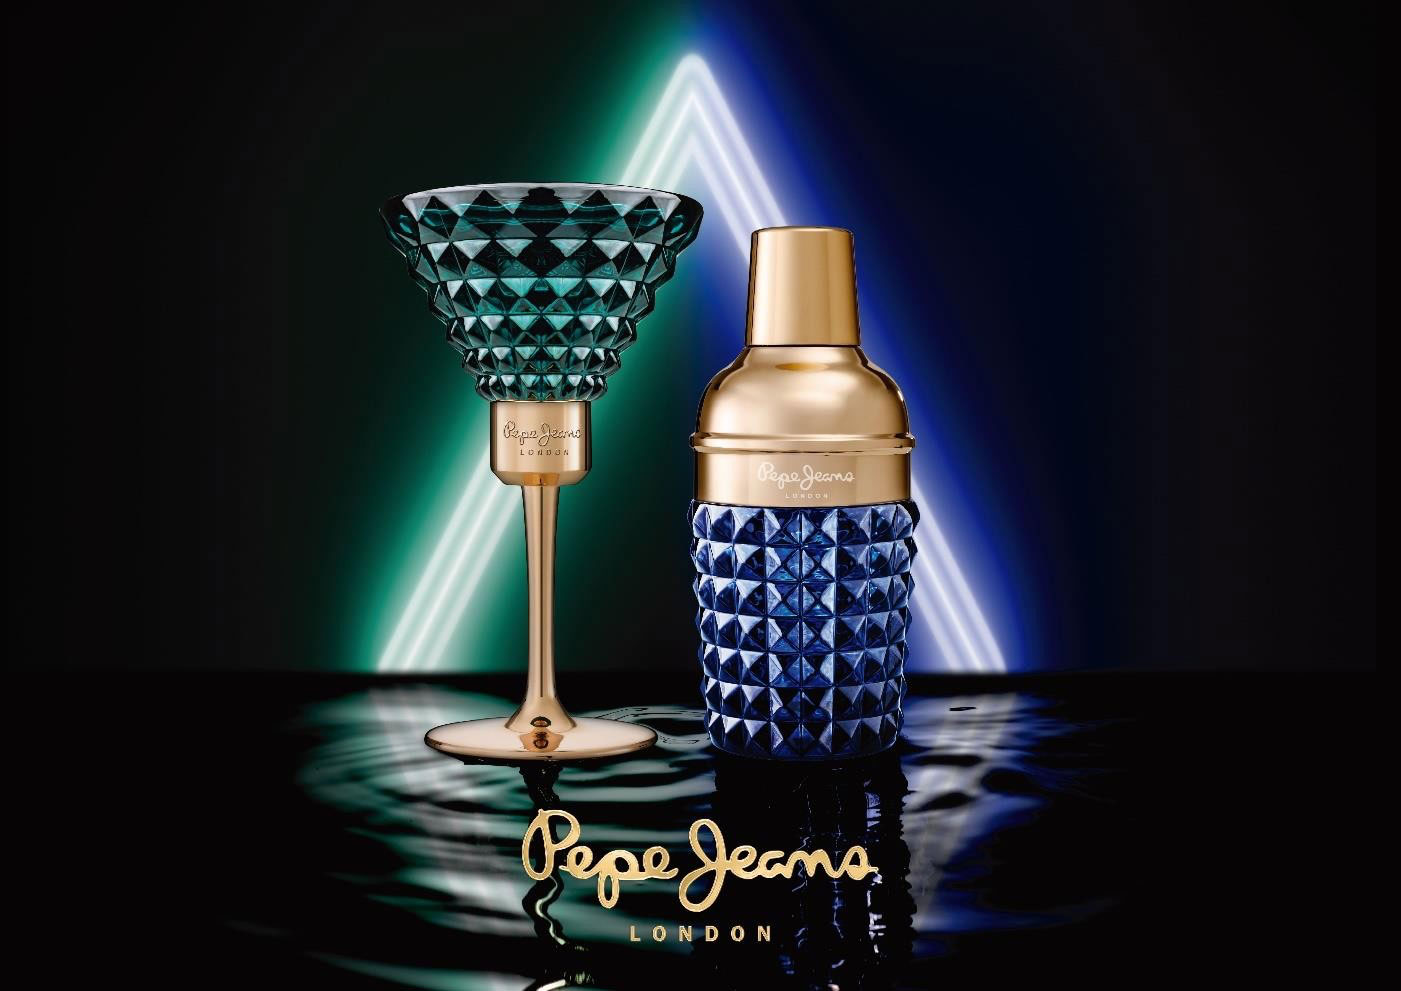 Tfwa 2019 Pepe Jeans Celebrate For Her For Him New Fragrances